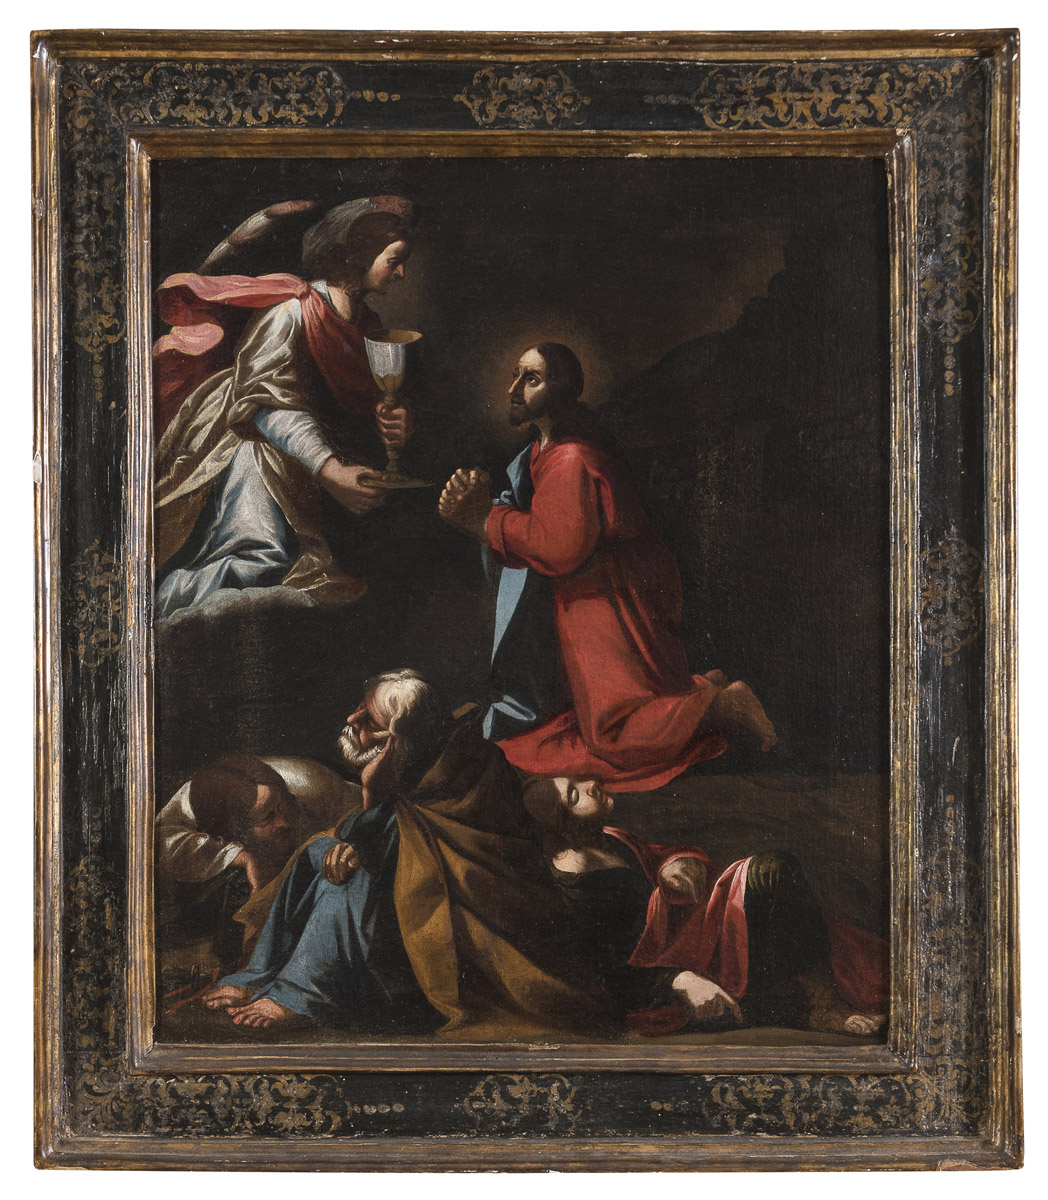 Lot 31 - CARAVAGGESQUE PAINTER FROM SIENA 17th CENTURY